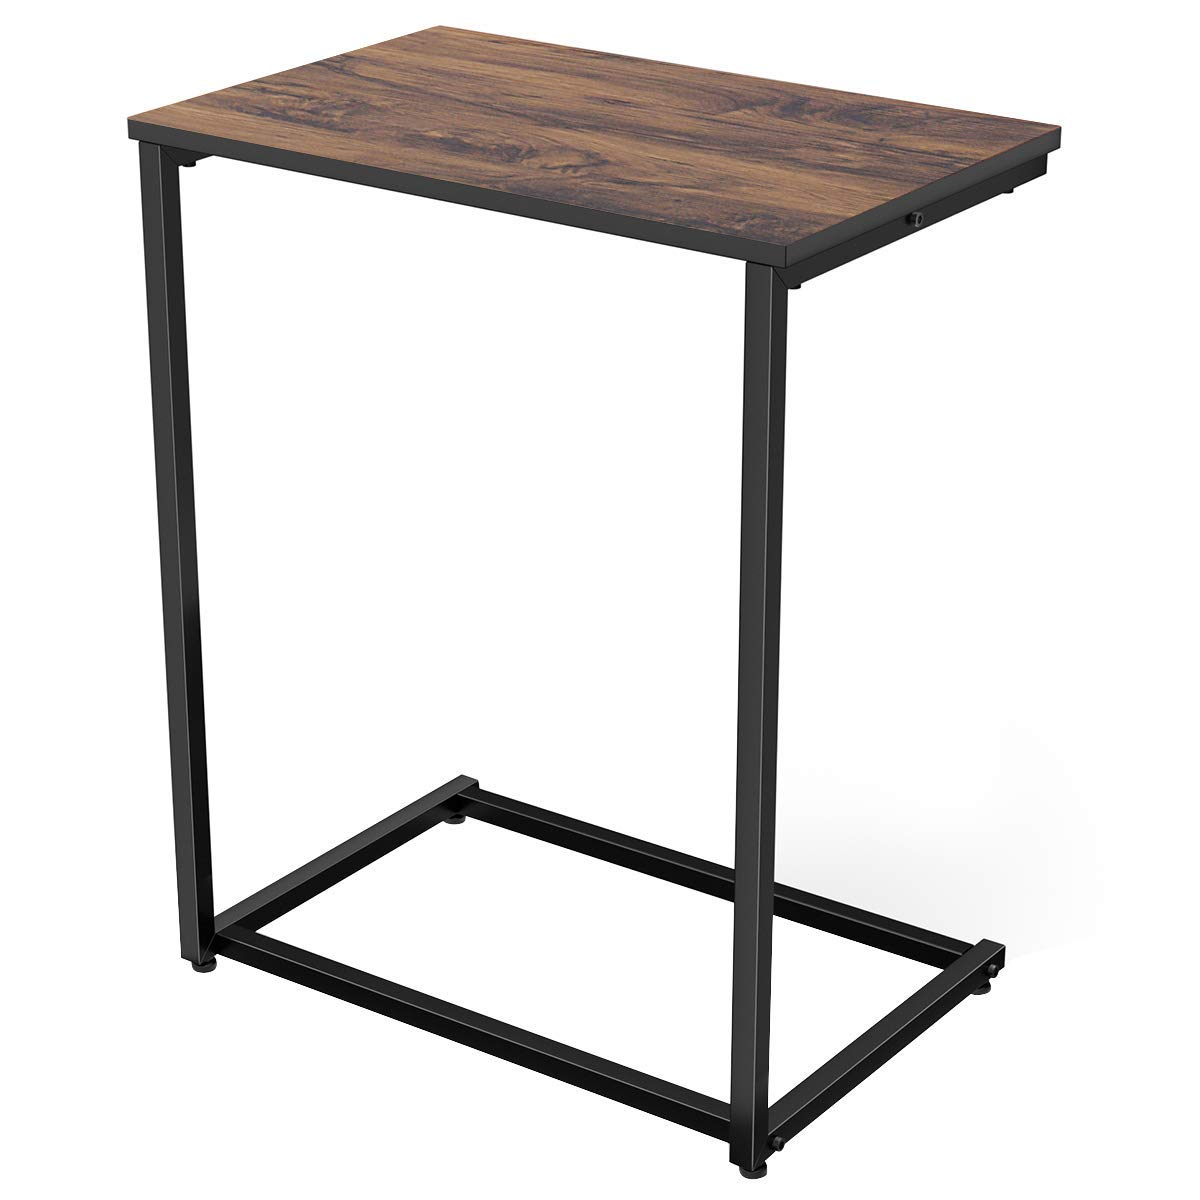 Laptop table for small apartment desk